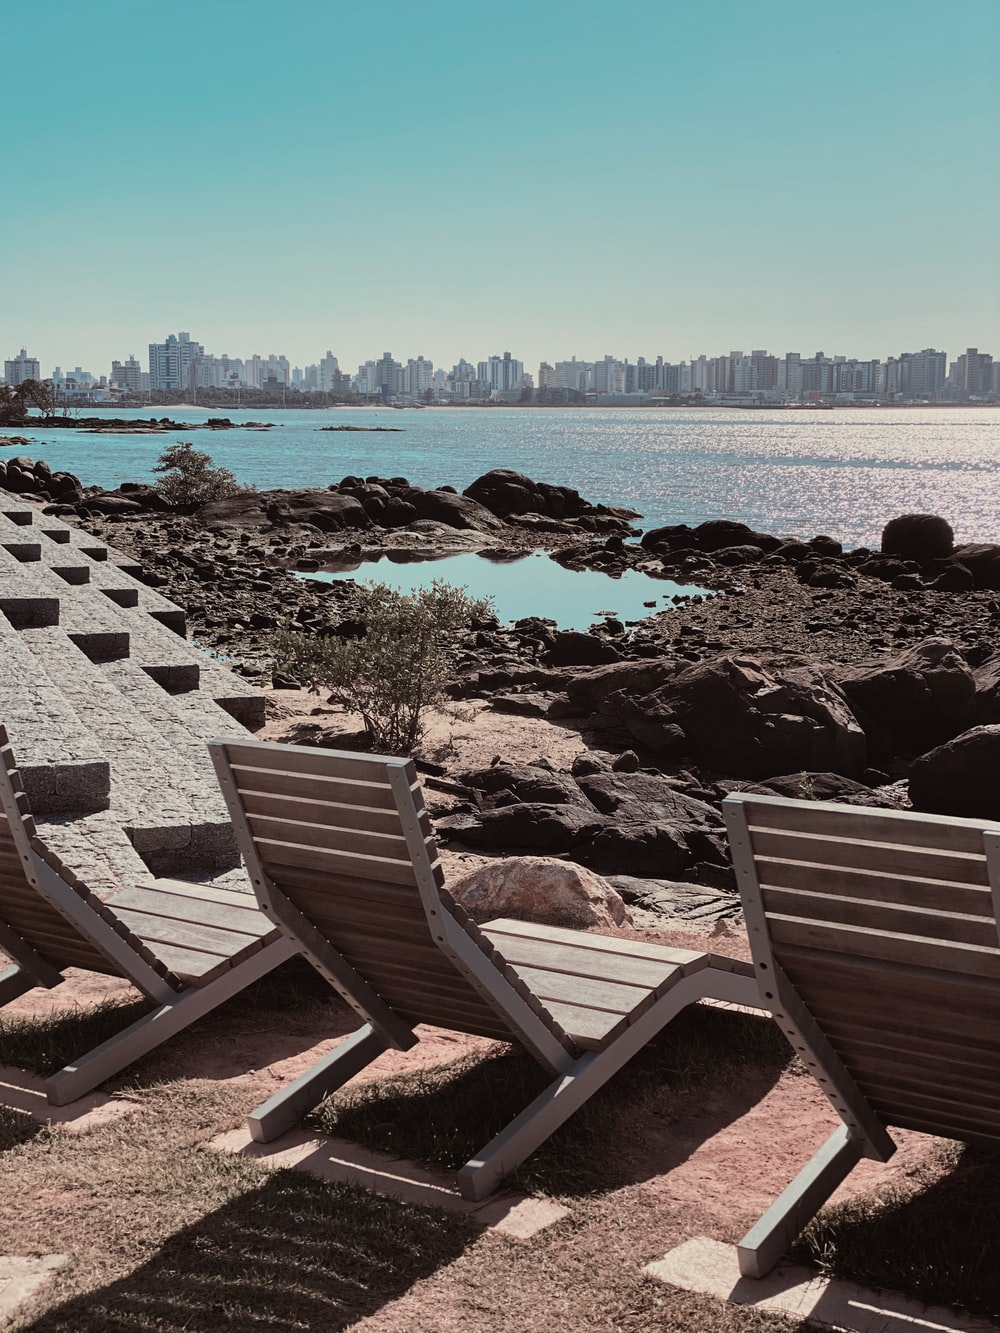 brown wooden bench on gray rocky shore during daytime